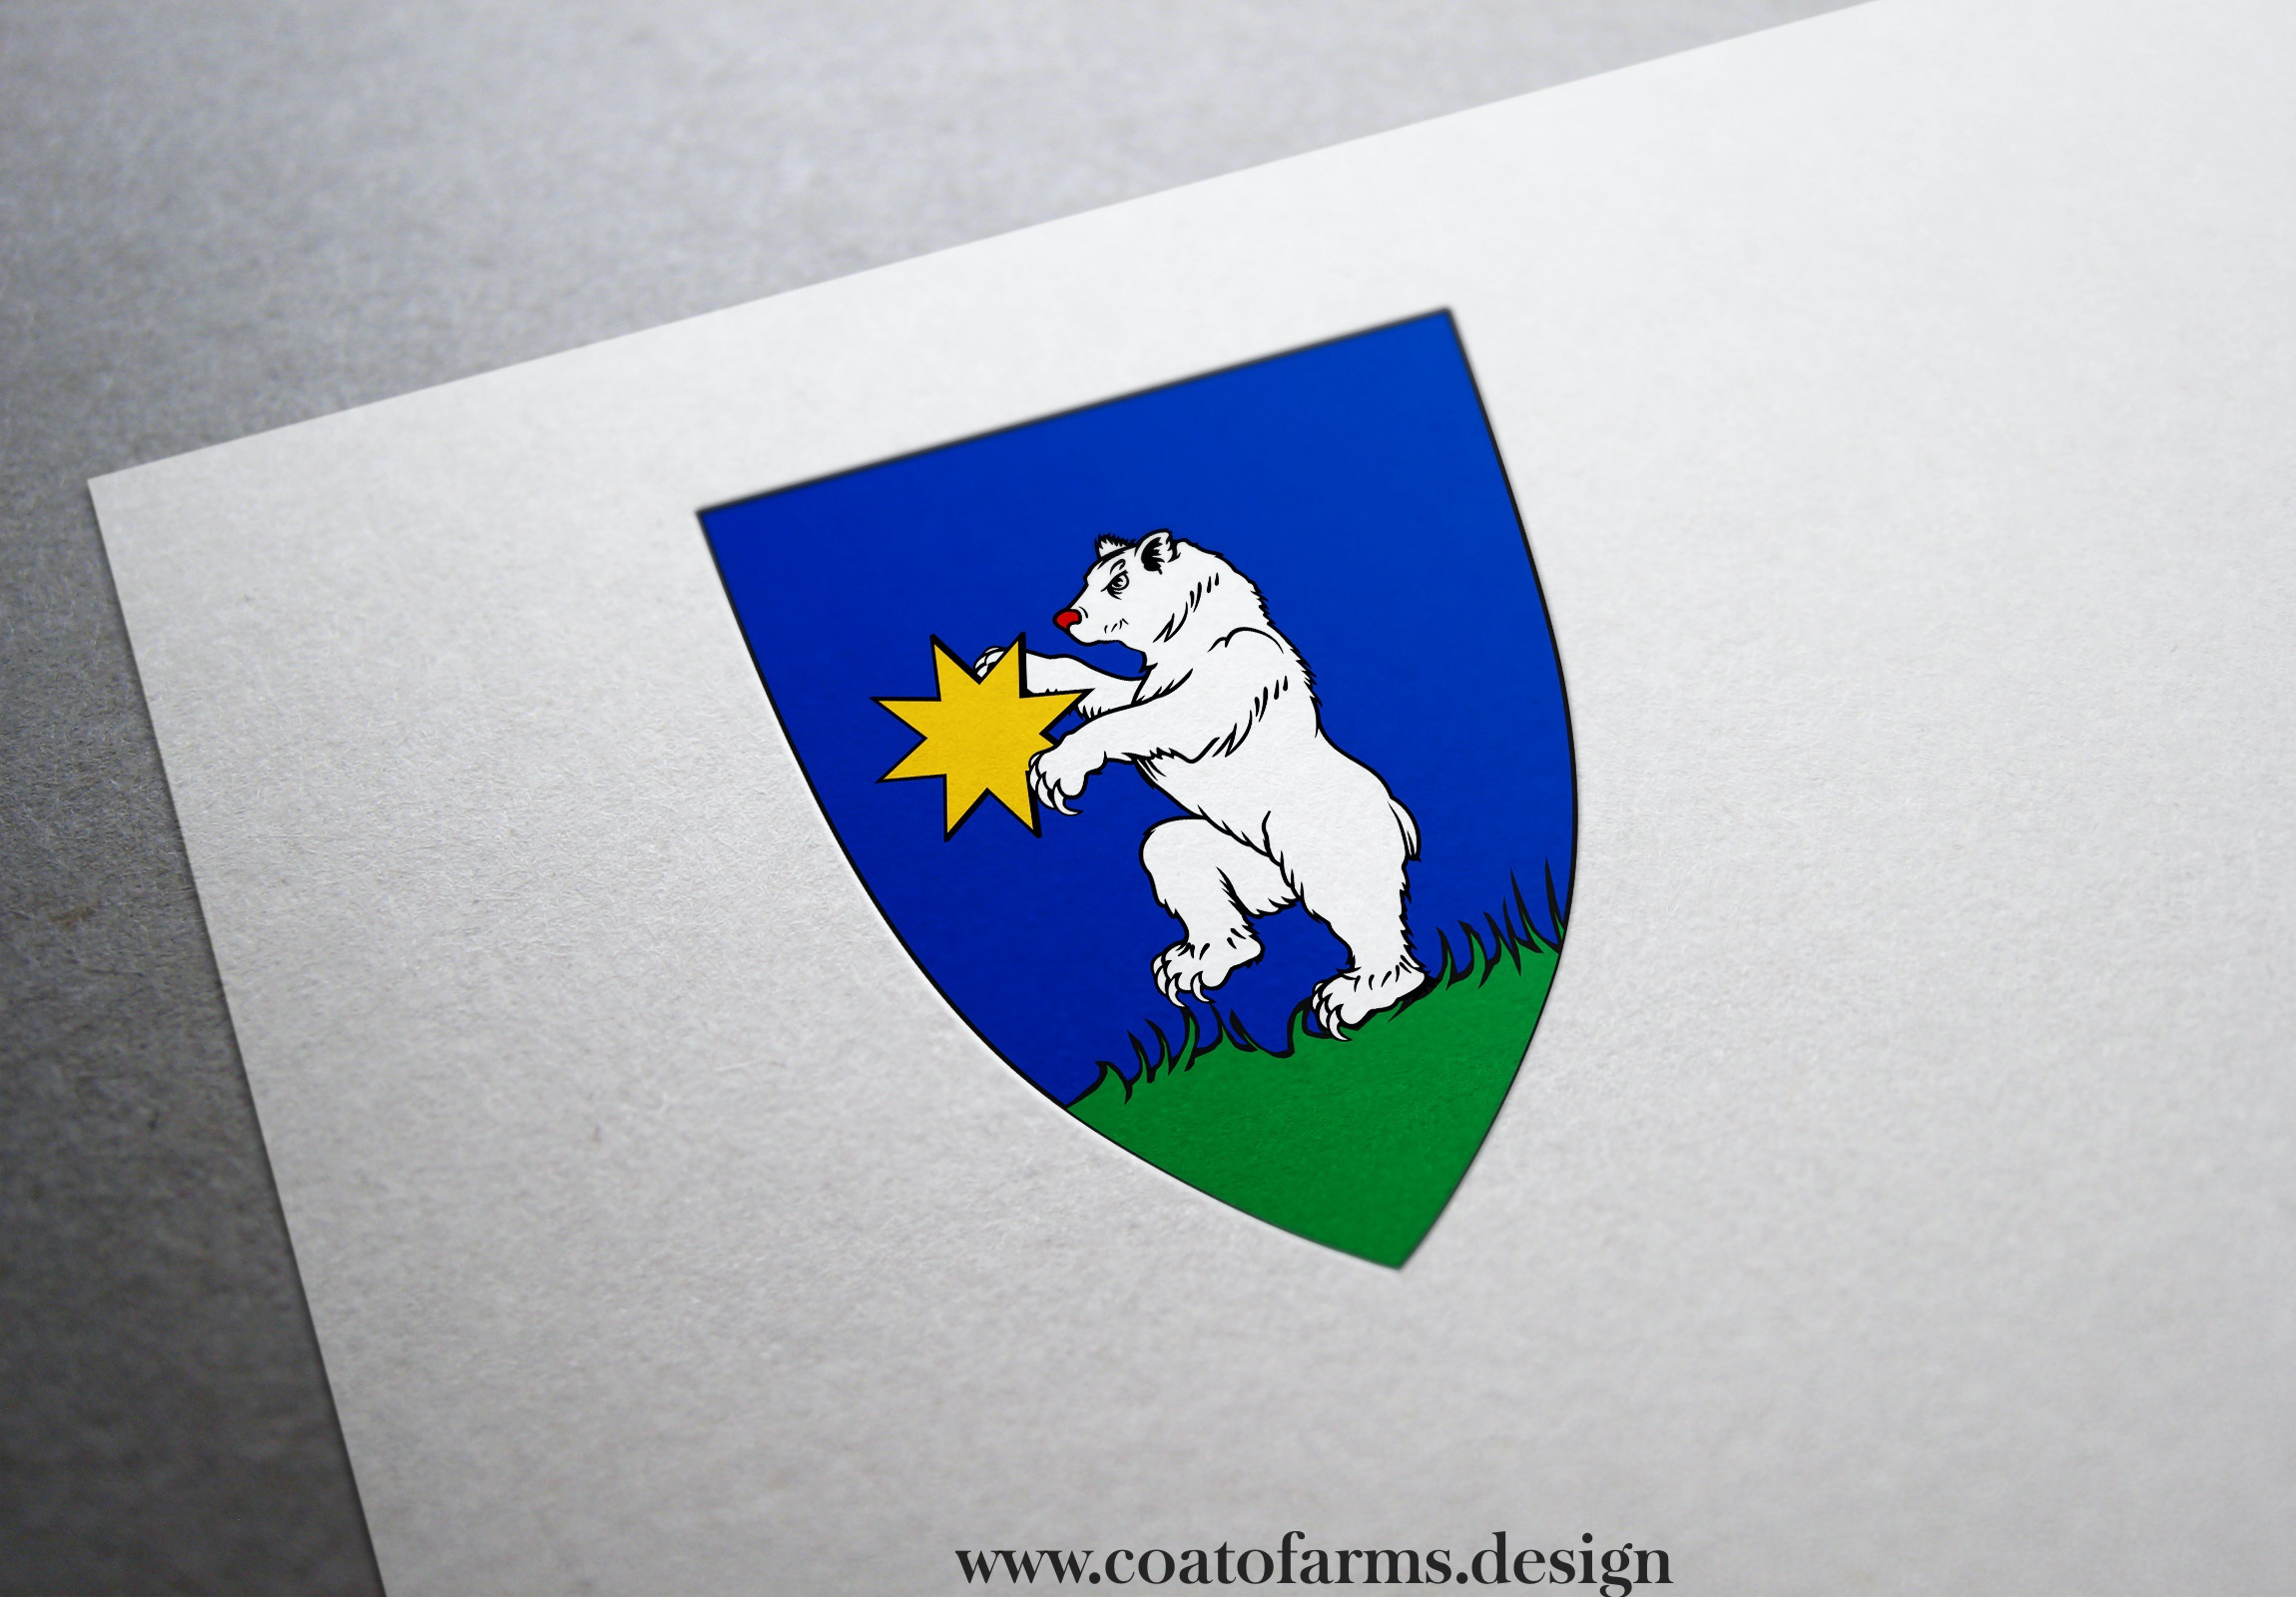 coat of arms family crest I designed for a book telling a story about an imaginary kingdom 2